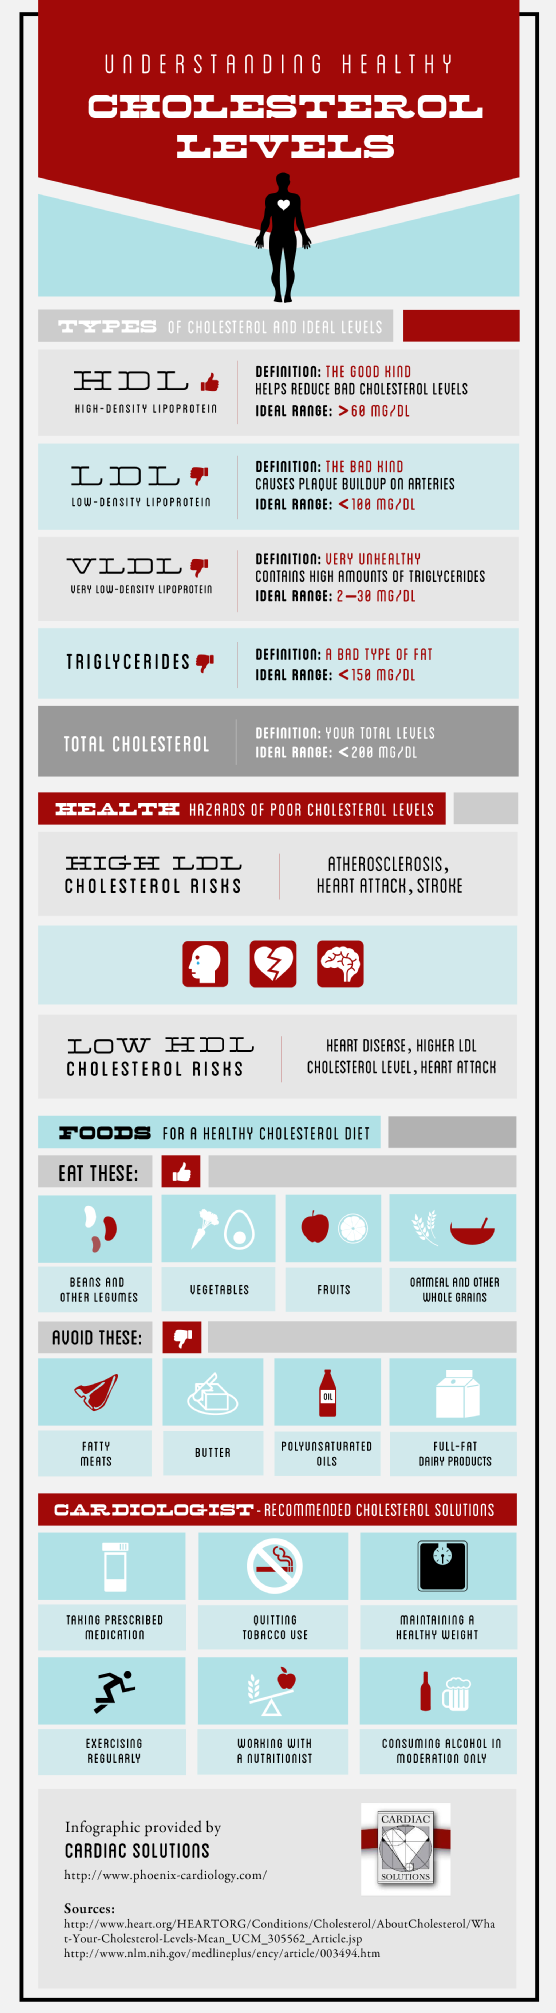 What is considered normal cholesterol